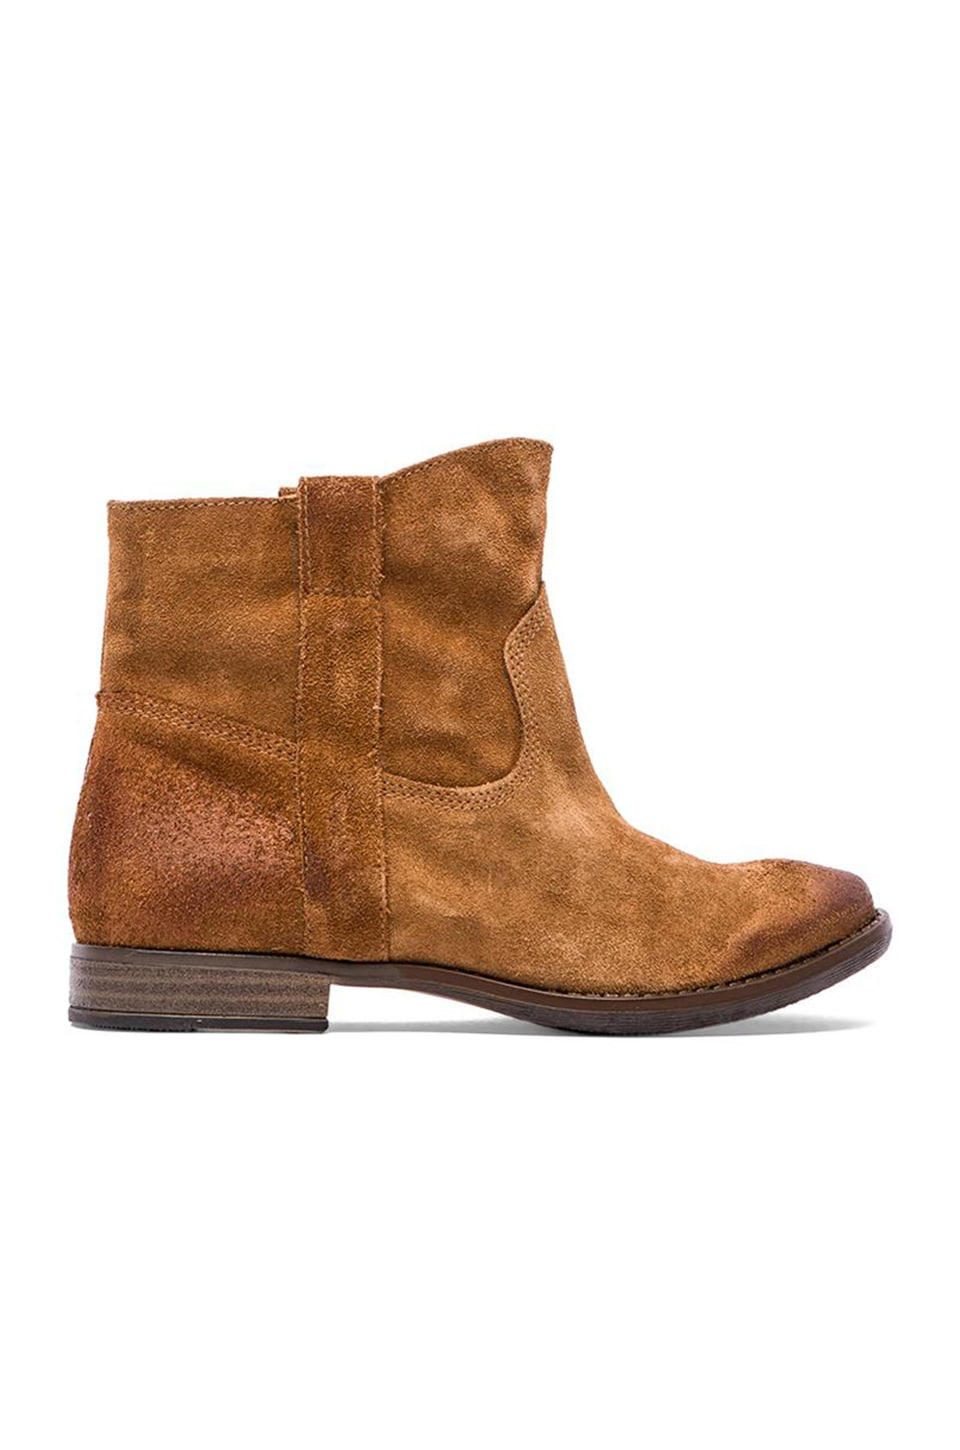 Matisse Milan Boot in Cognac